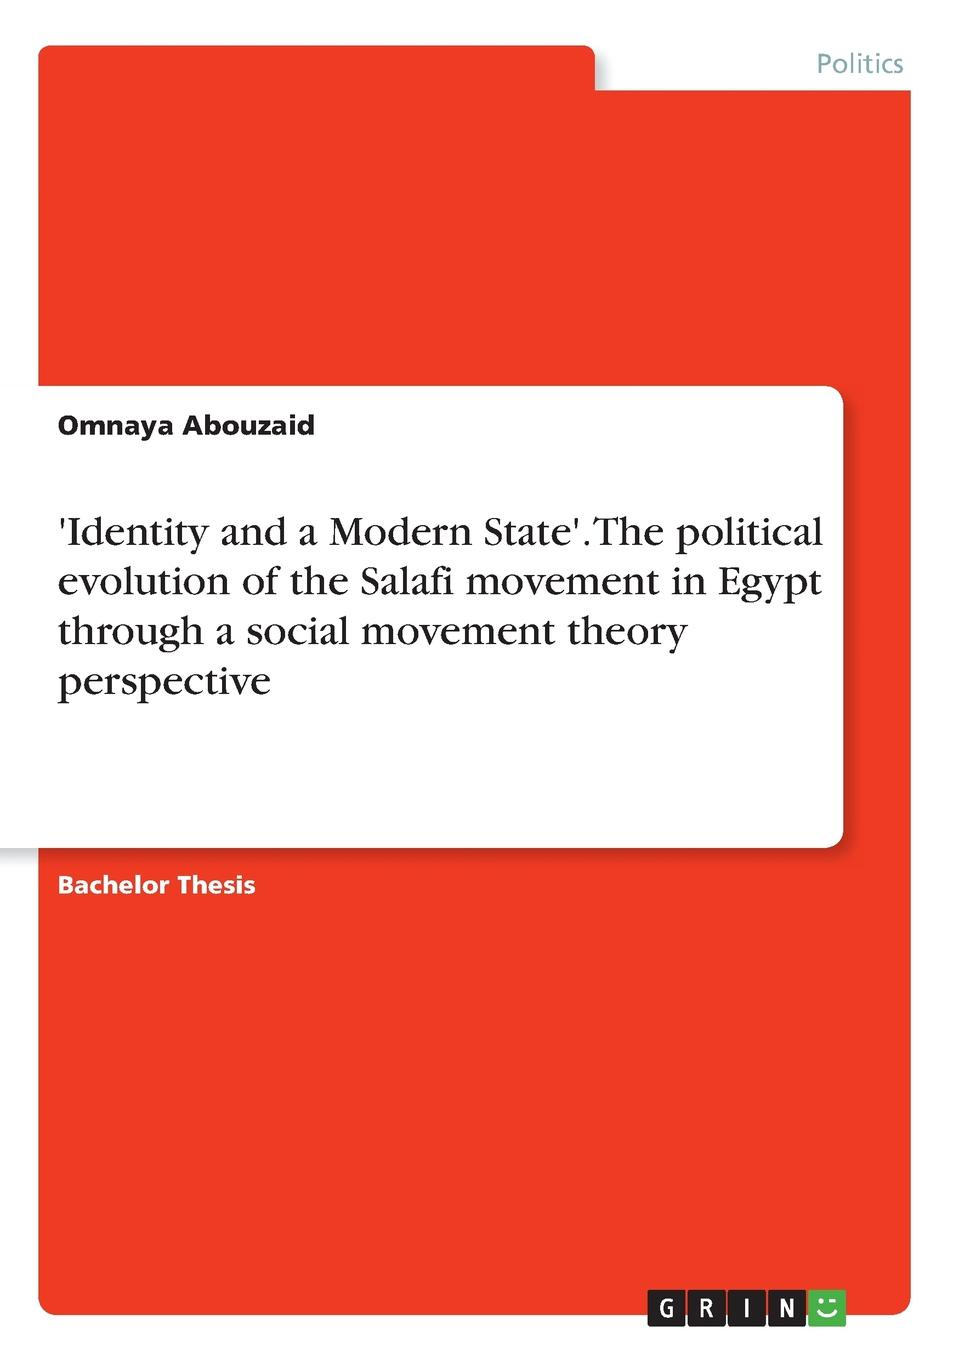 цена Omnaya Abouzaid .Identity and a Modern State.. The political evolution of the Salafi movement in Egypt through a social movement theory perspective в интернет-магазинах